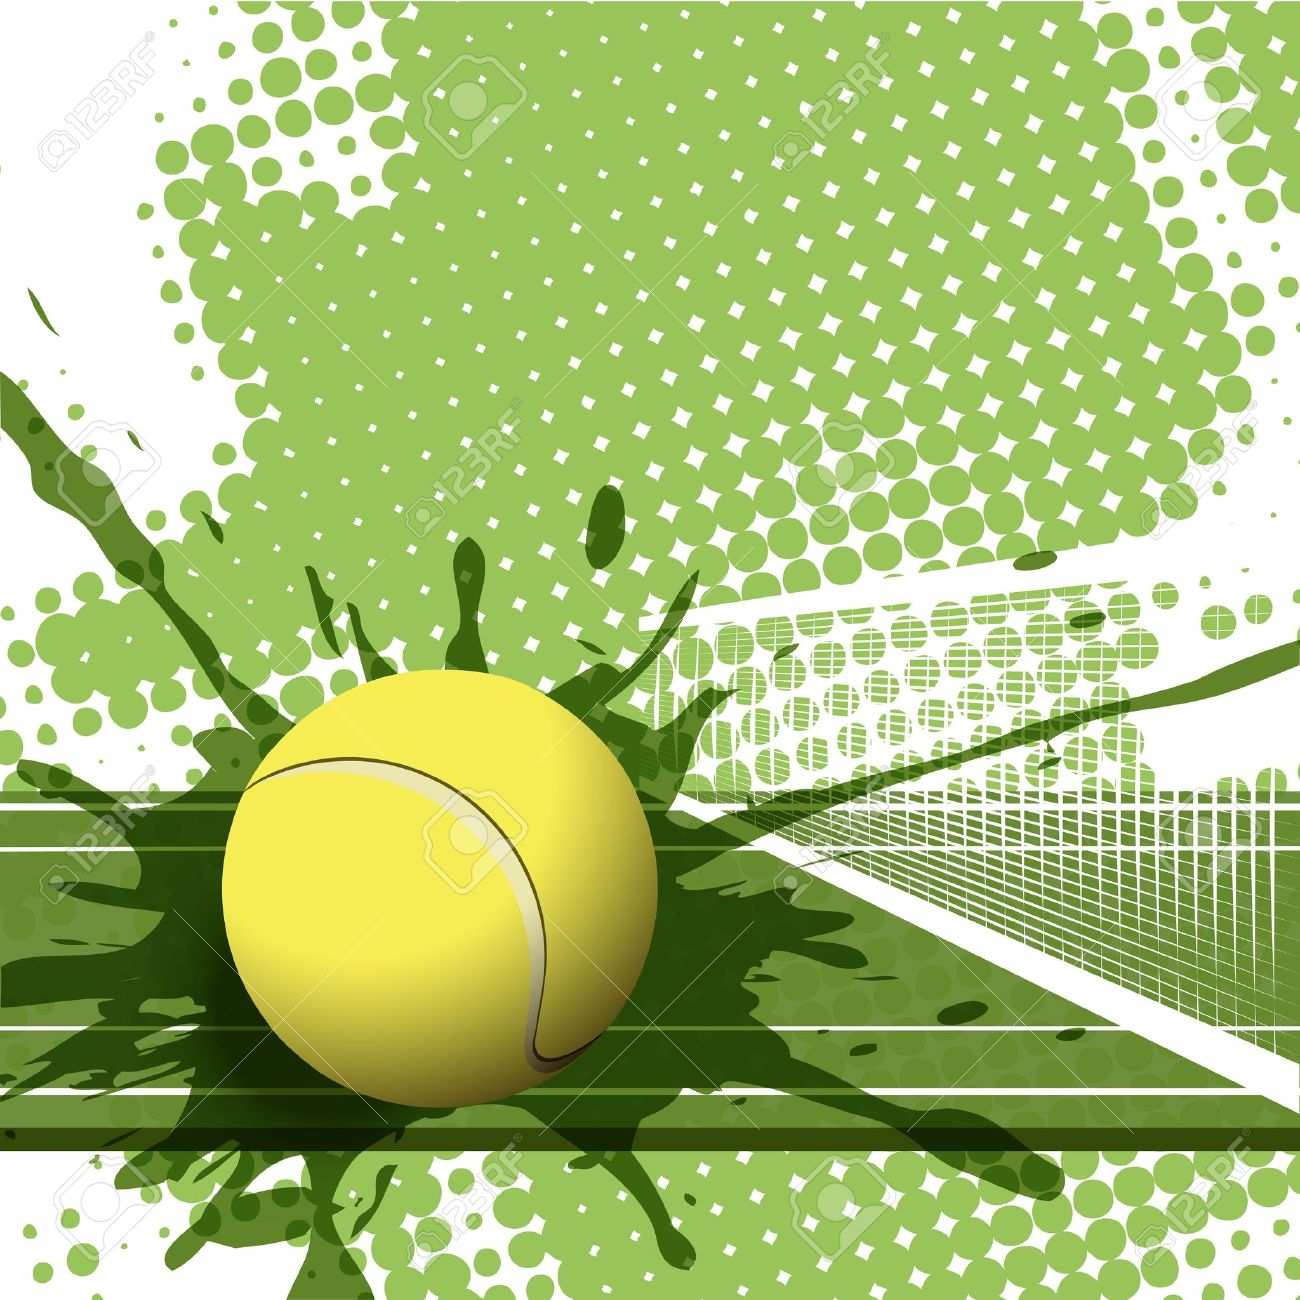 hight resolution of clipart categories free tennis clipart tennis ill